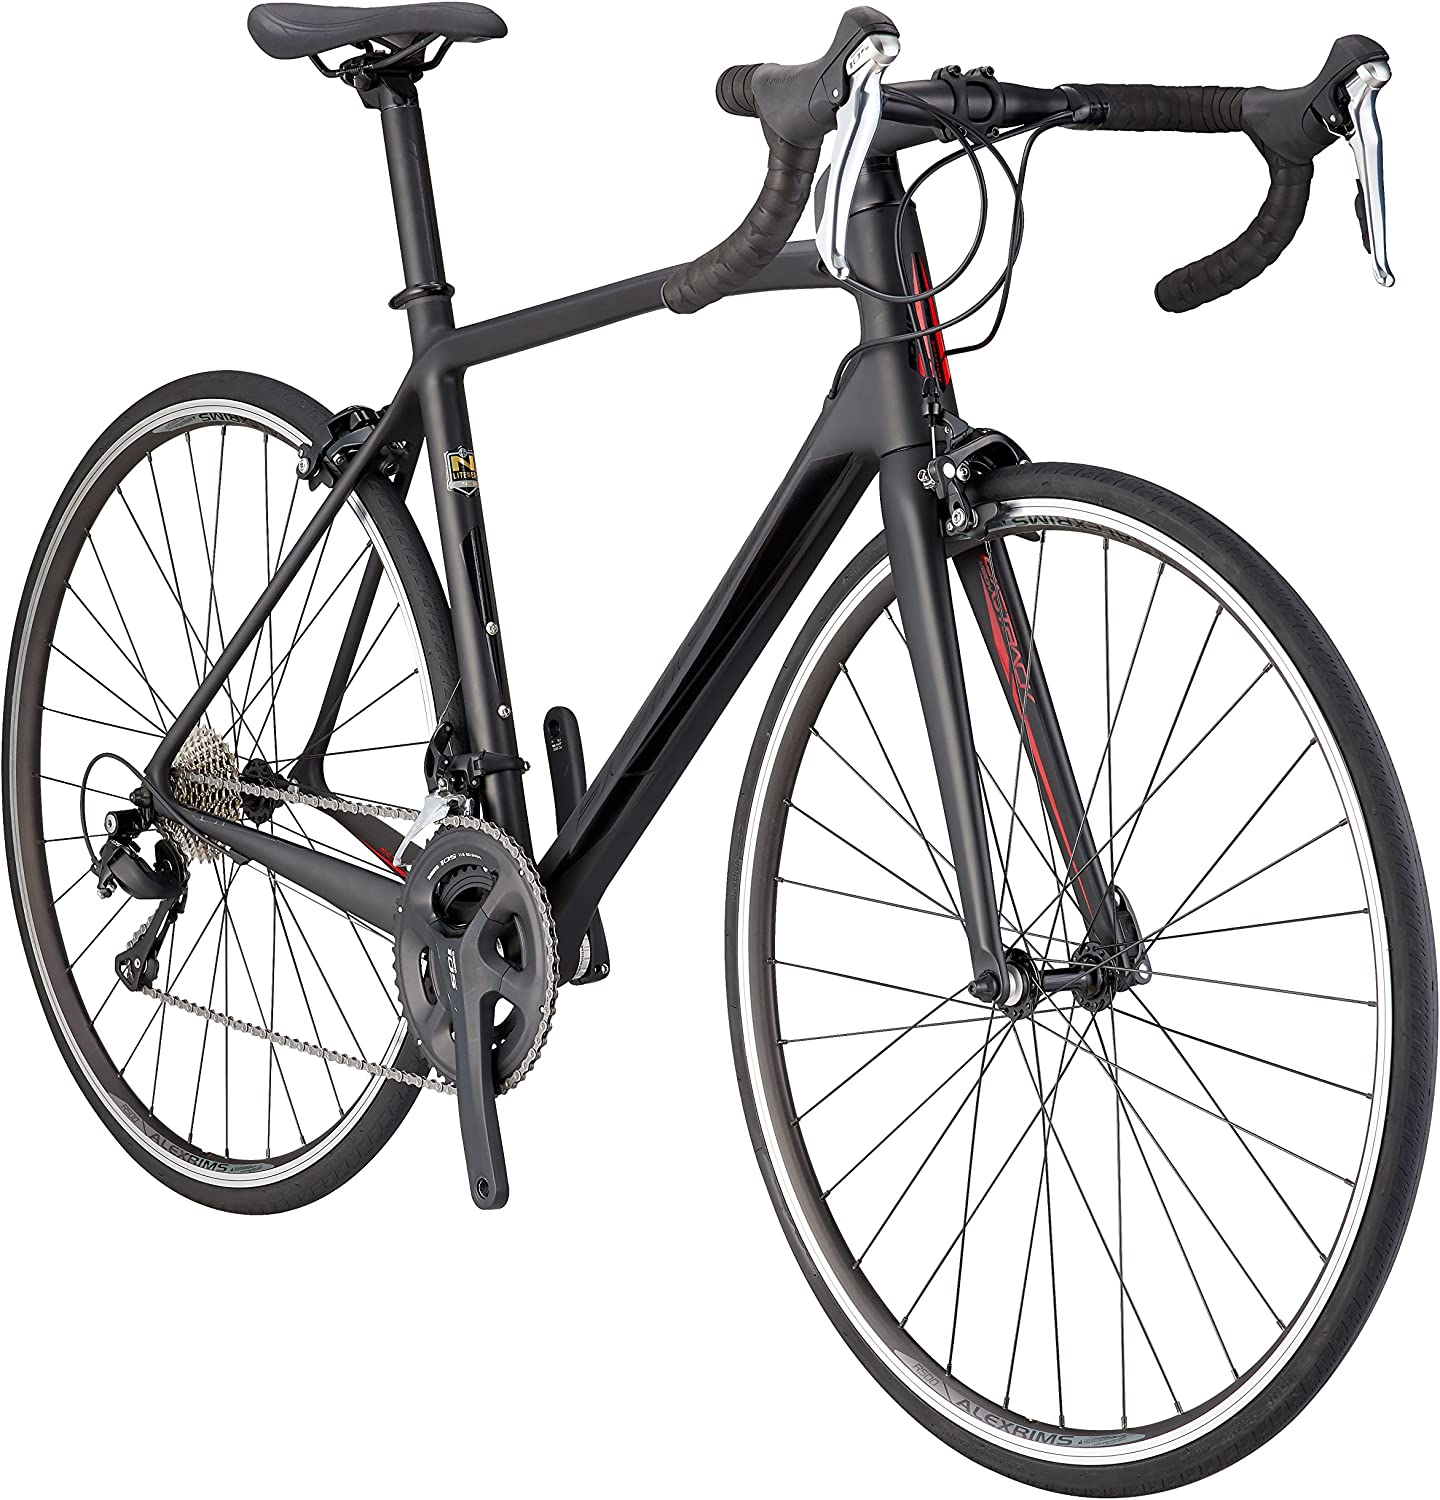 Best road bikes under 2000: Schwinn Fastback Carbon Performance Road Bike